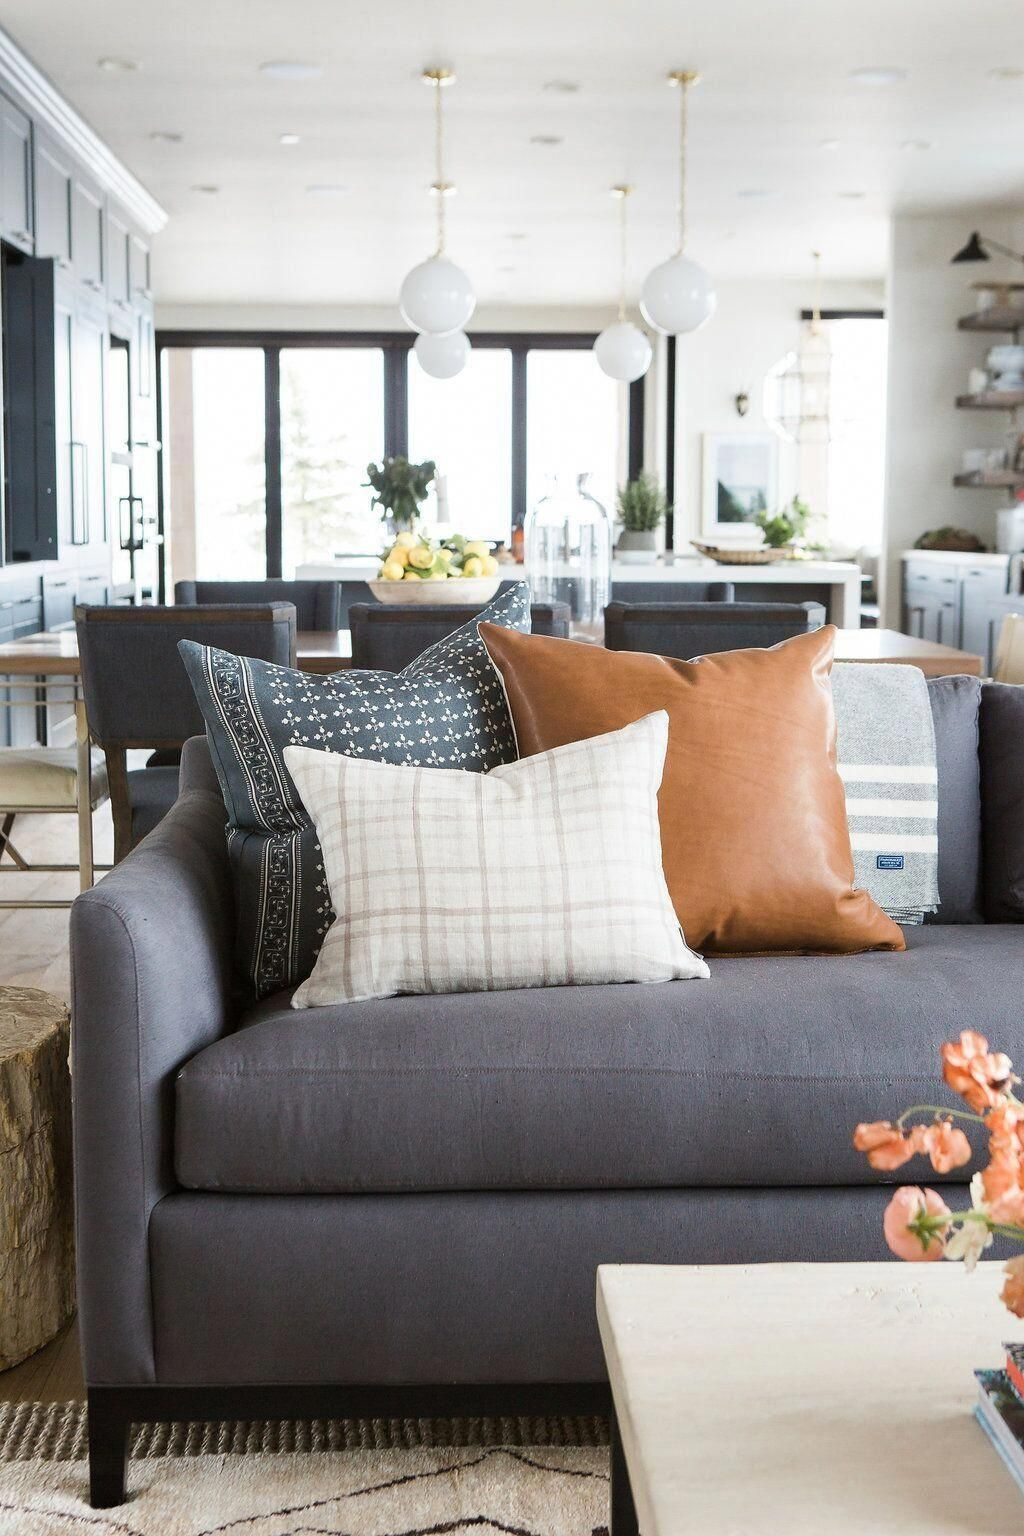 Shop sawyer hygge throw in gray cognac leather watercolor plaid birch and more pillowoncouch also blue  white house remodeling pinterest rh